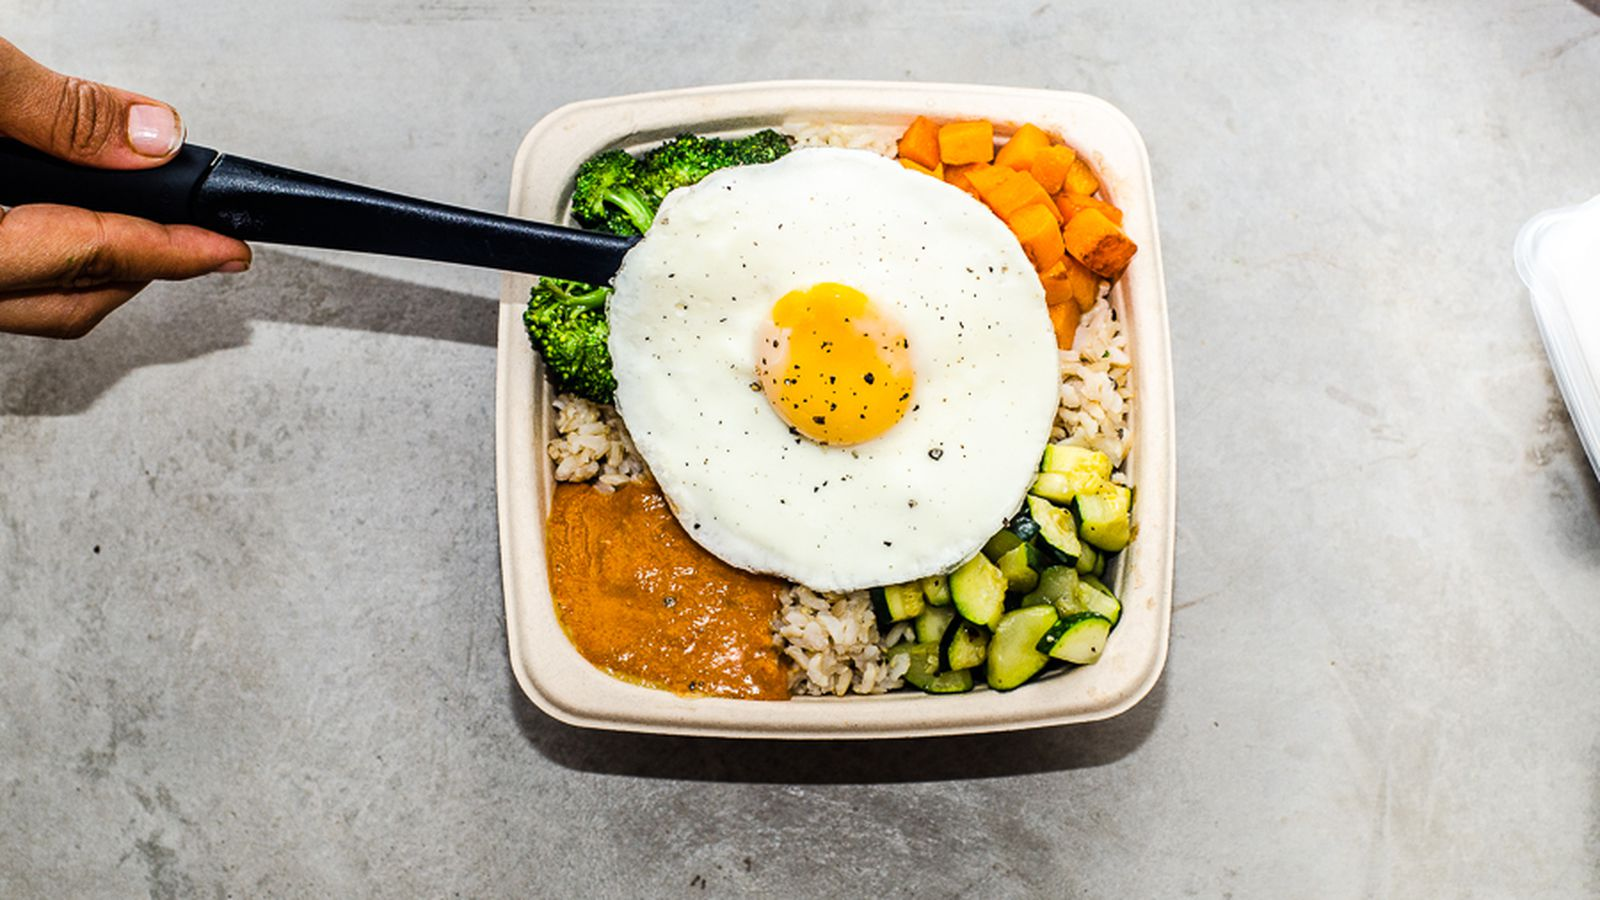 Gather Kitchen Brings Healthy Bowls To Downtown Eater Dallas